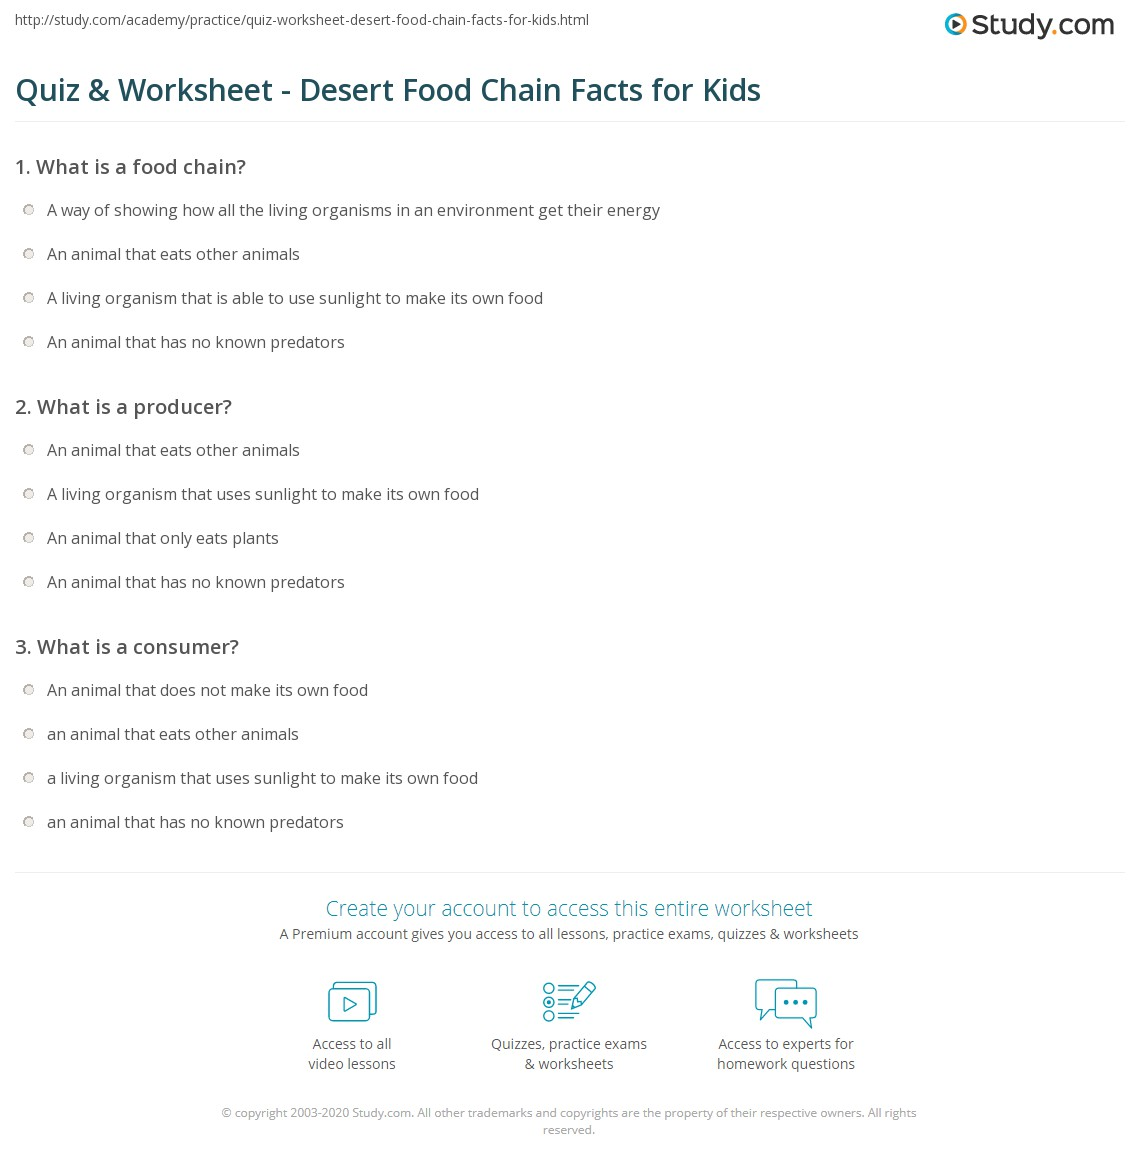 Quiz Worksheet Desert Food Chain Facts For Kids Study Com